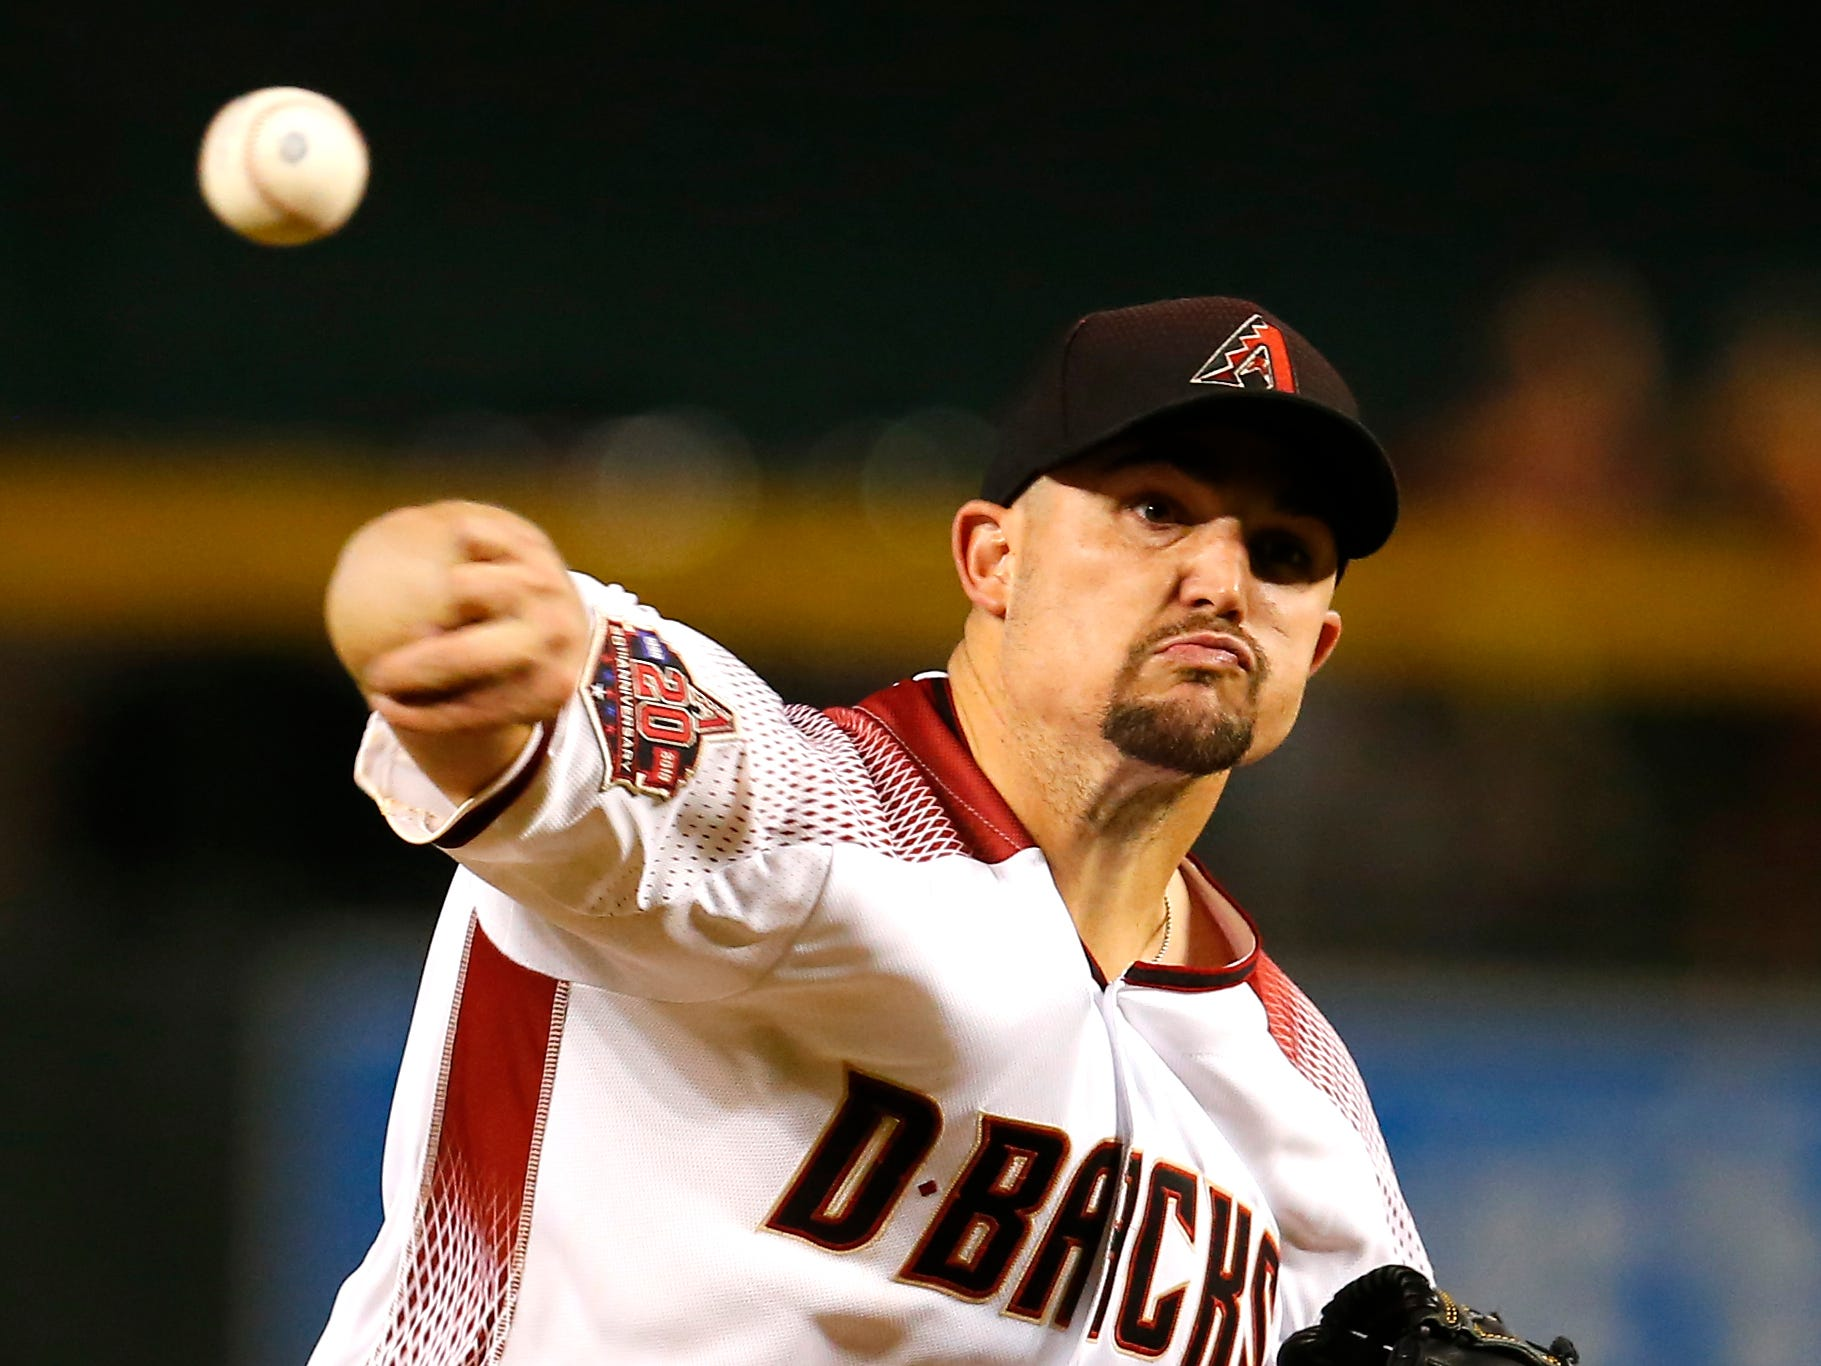 Arizona Diamondbacks starting pitcher Zack Godley (52) in the first inning during a baseball game against the Philadelphia Phillies, Monday, Aug. 6, 2018, in Phoenix.